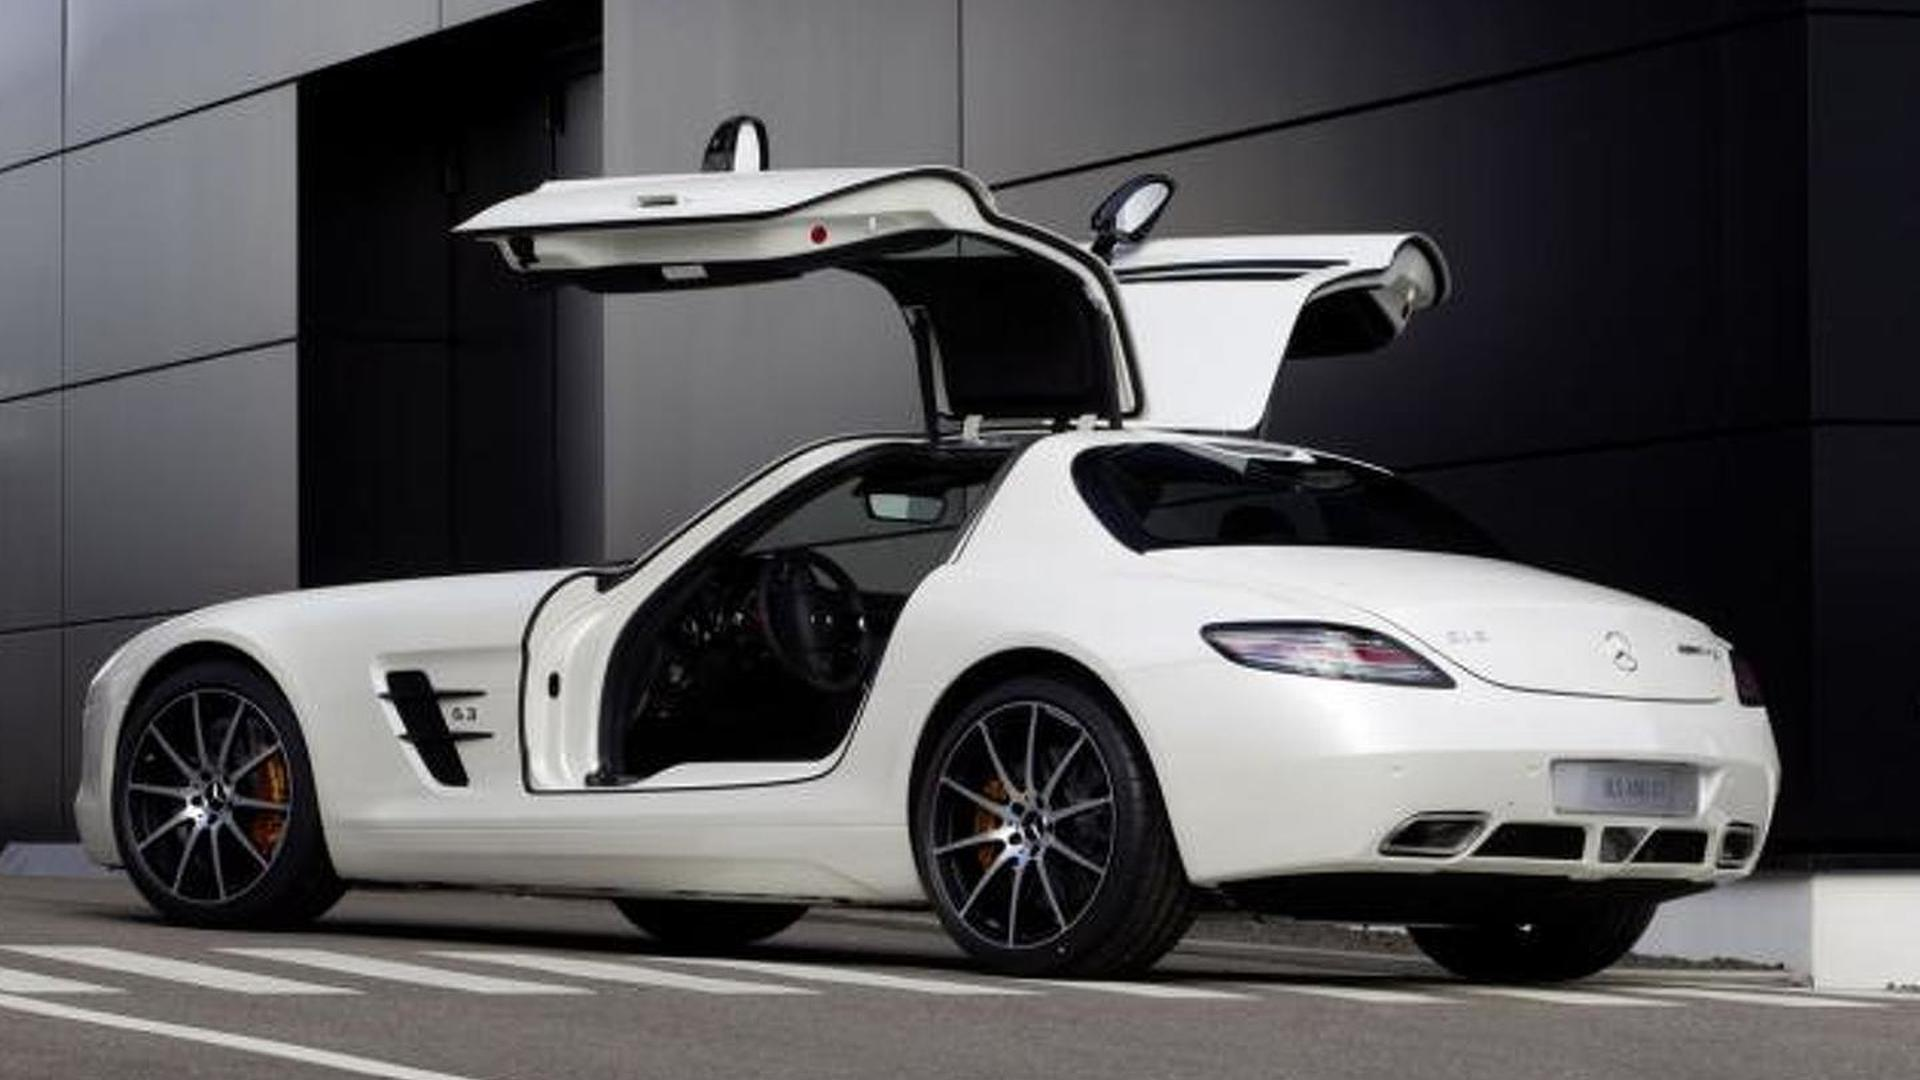 2013 Mercedes SLS AMG GT Nurburgring lap time is 7:30 - priced for US